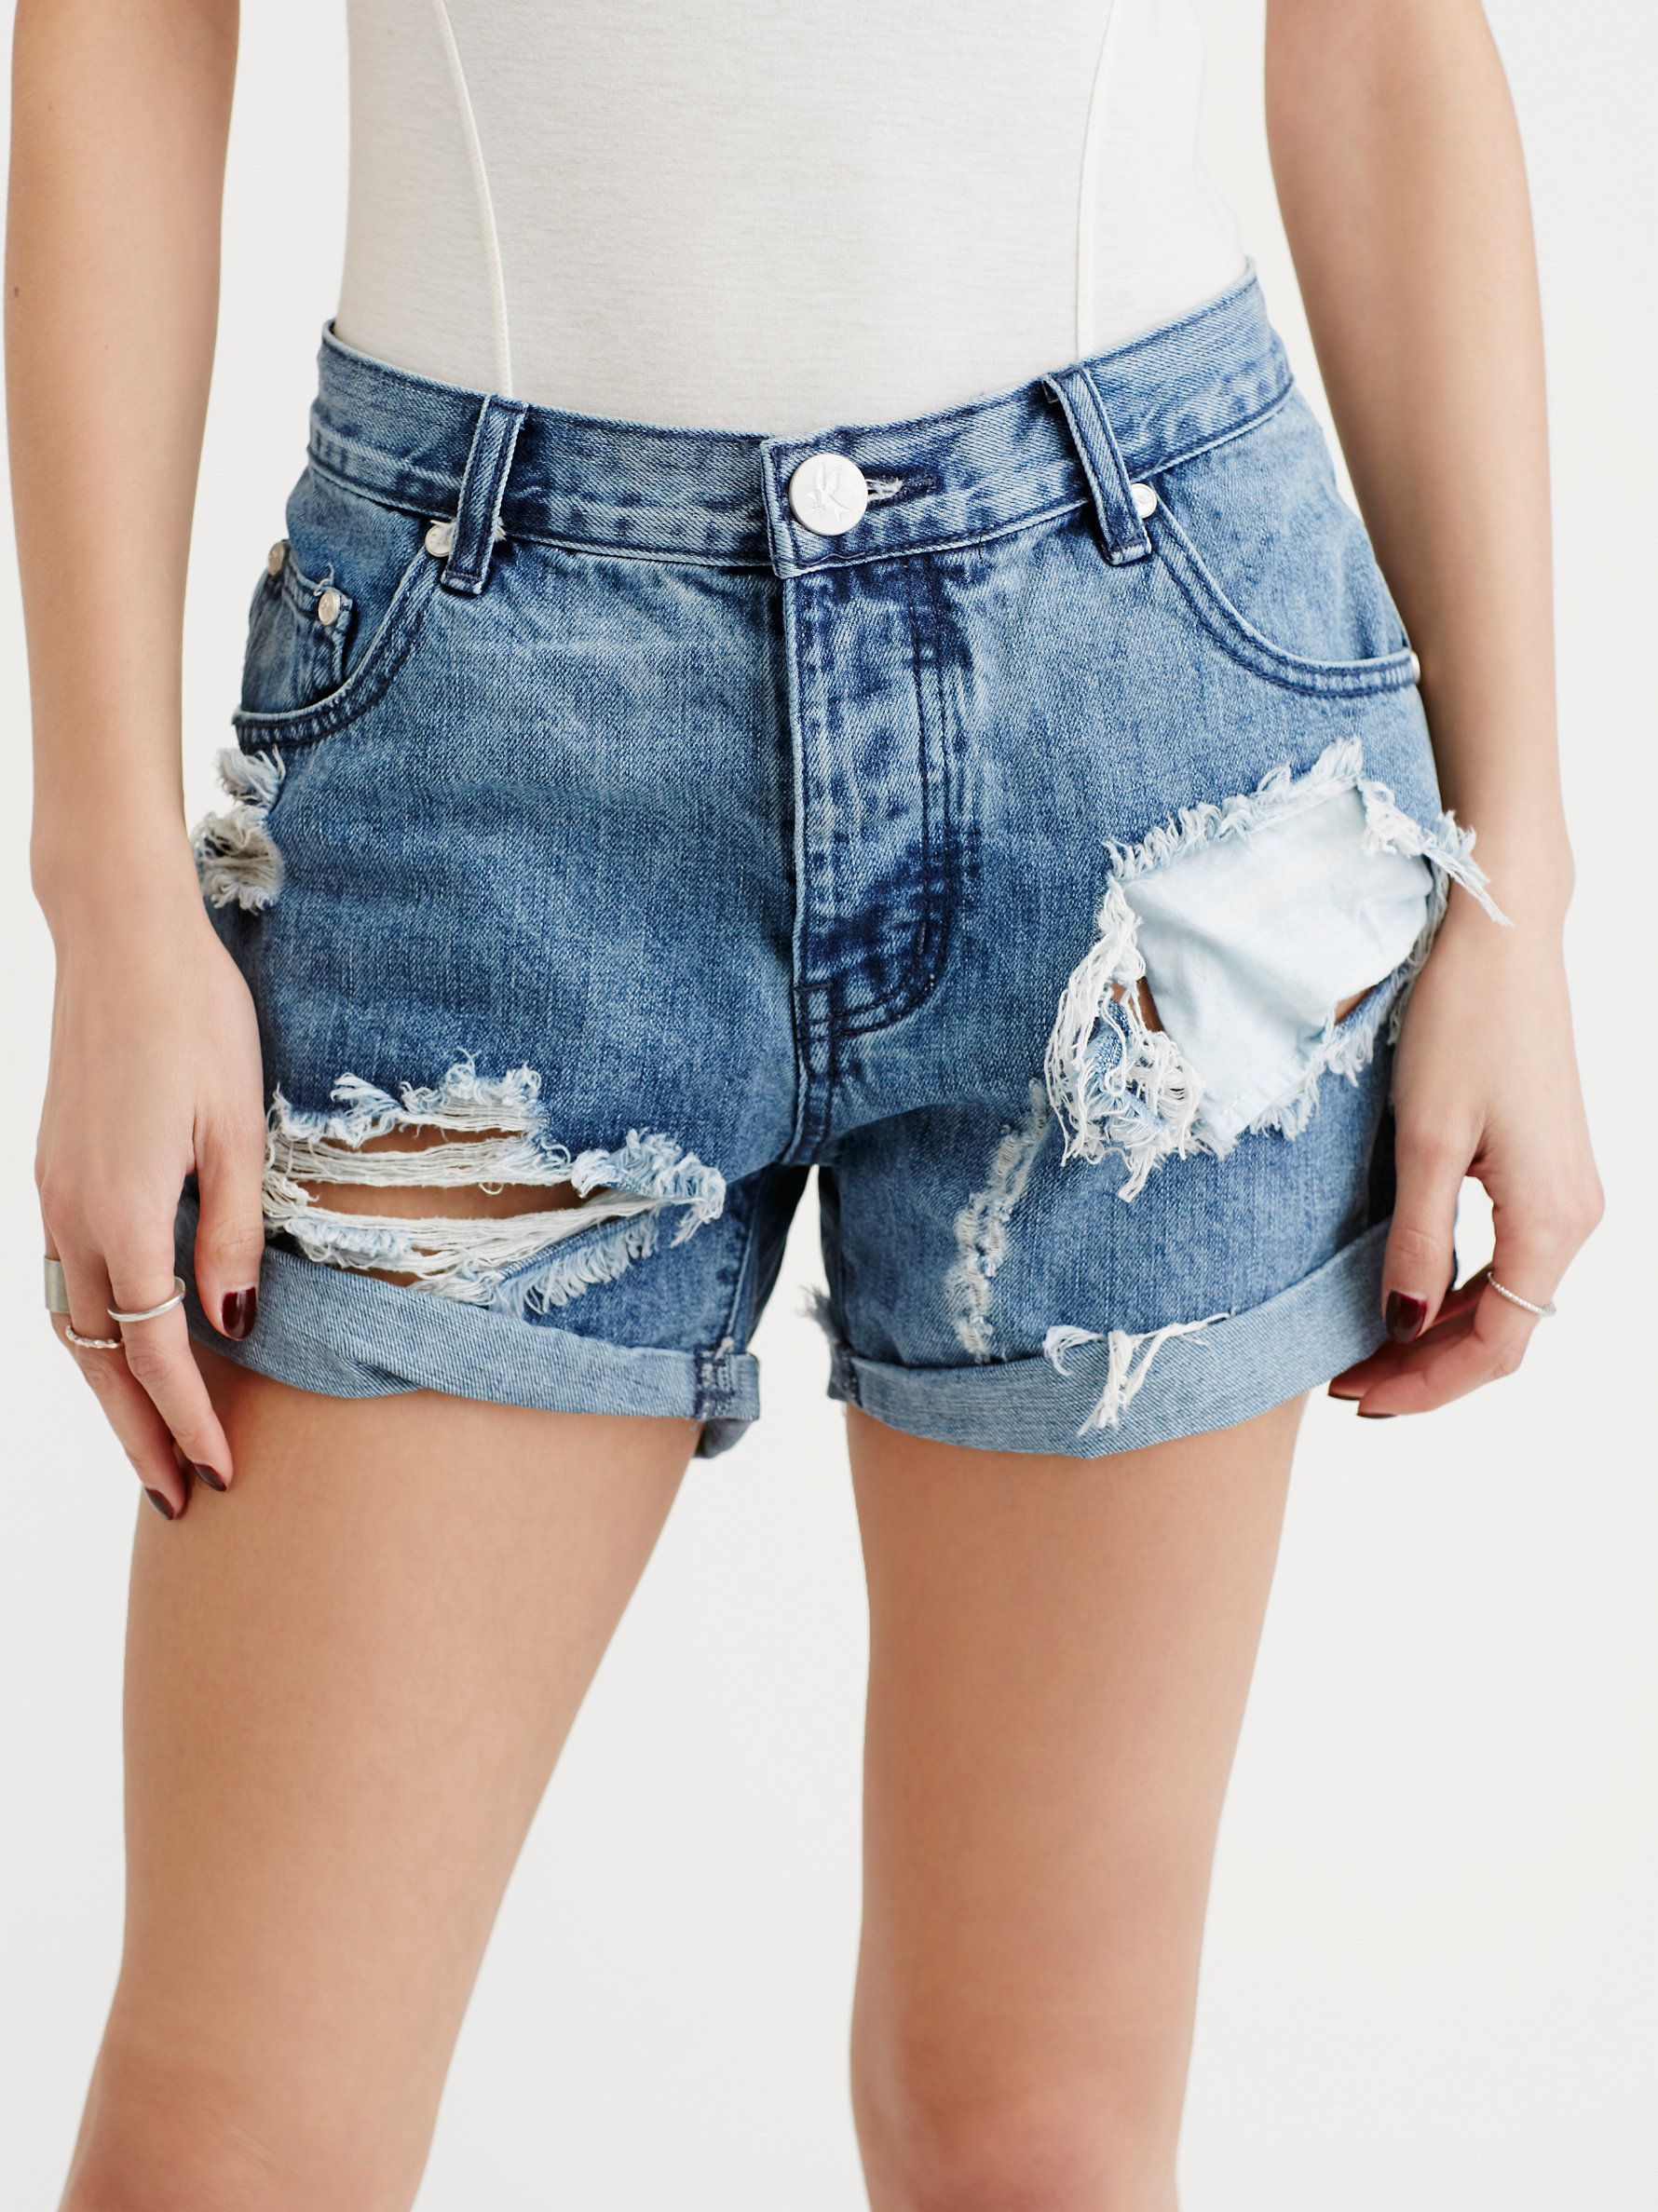 Charger Cutoffs Mid rise denim, Outfits for teens, Fashion